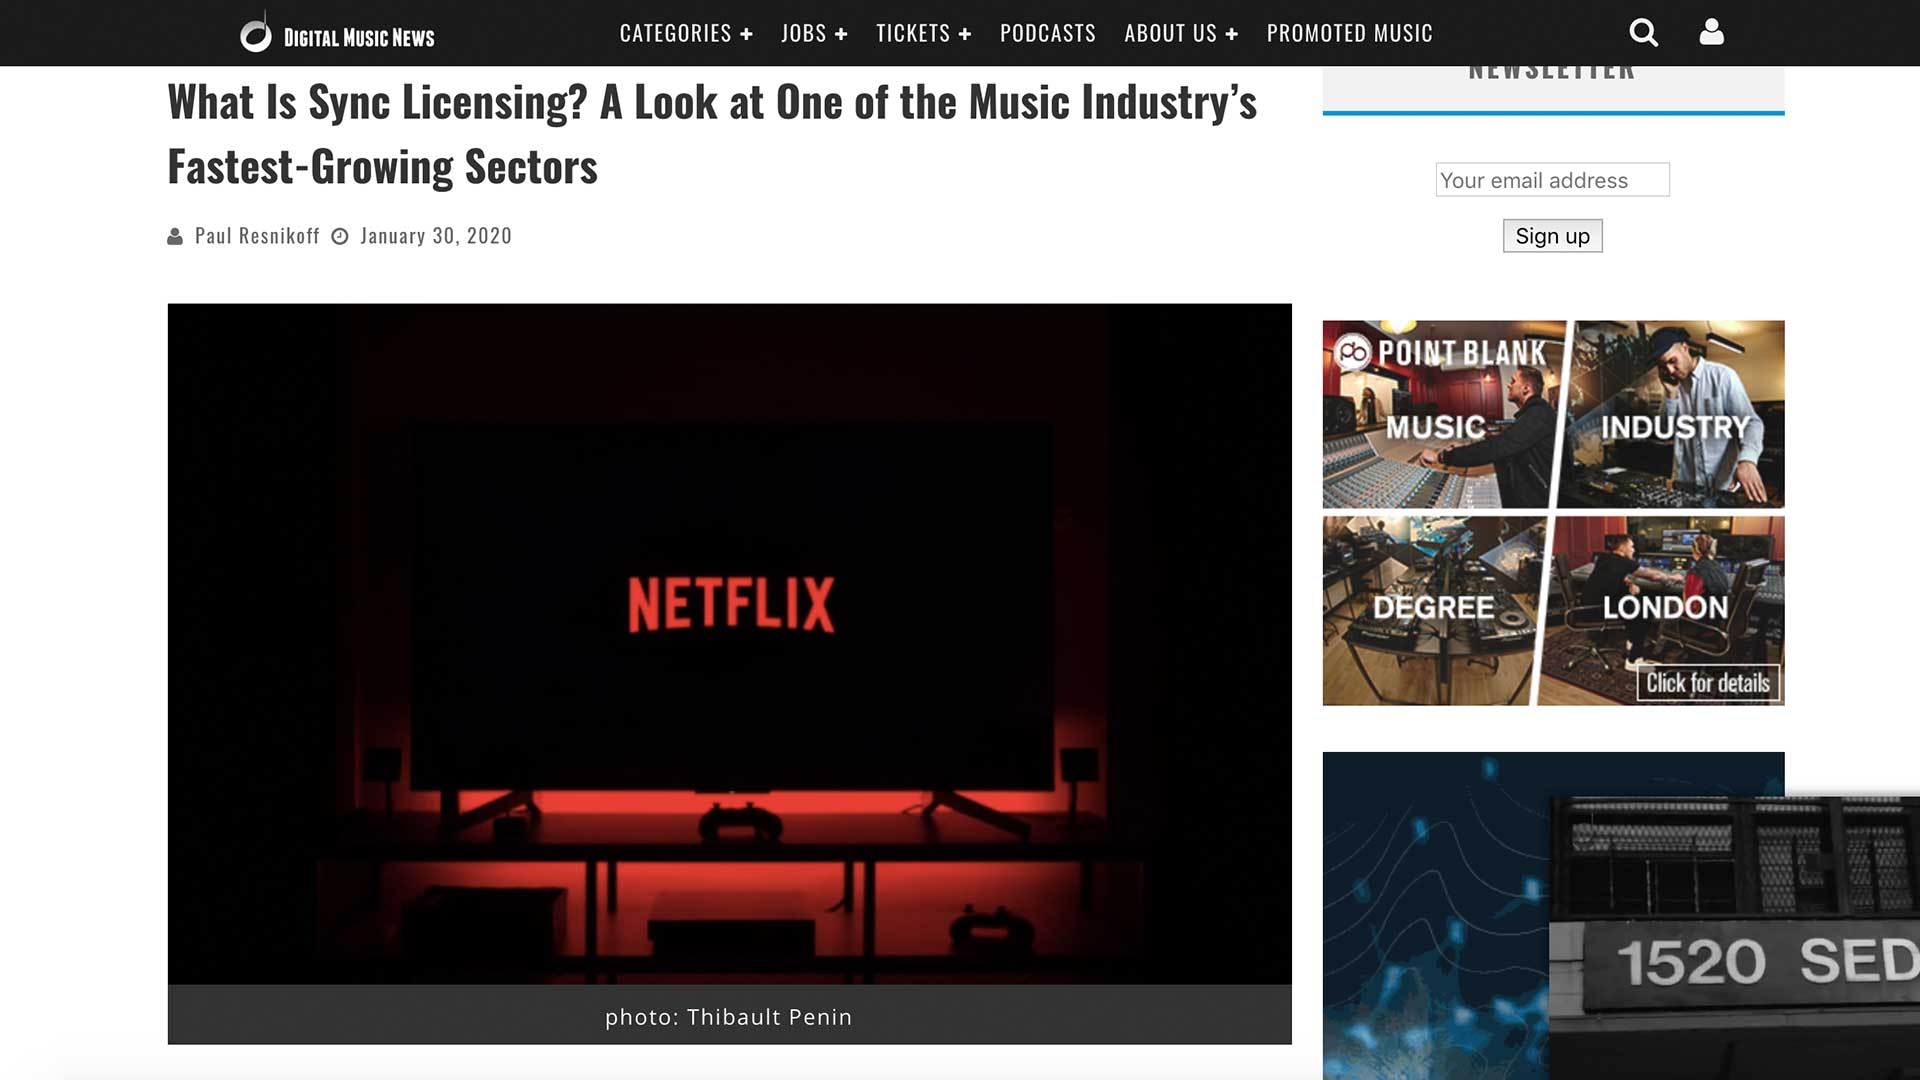 Fairness Rocks News What Is Sync Licensing? A Look at One of the Music Industry's Fastest-Growing Sectors